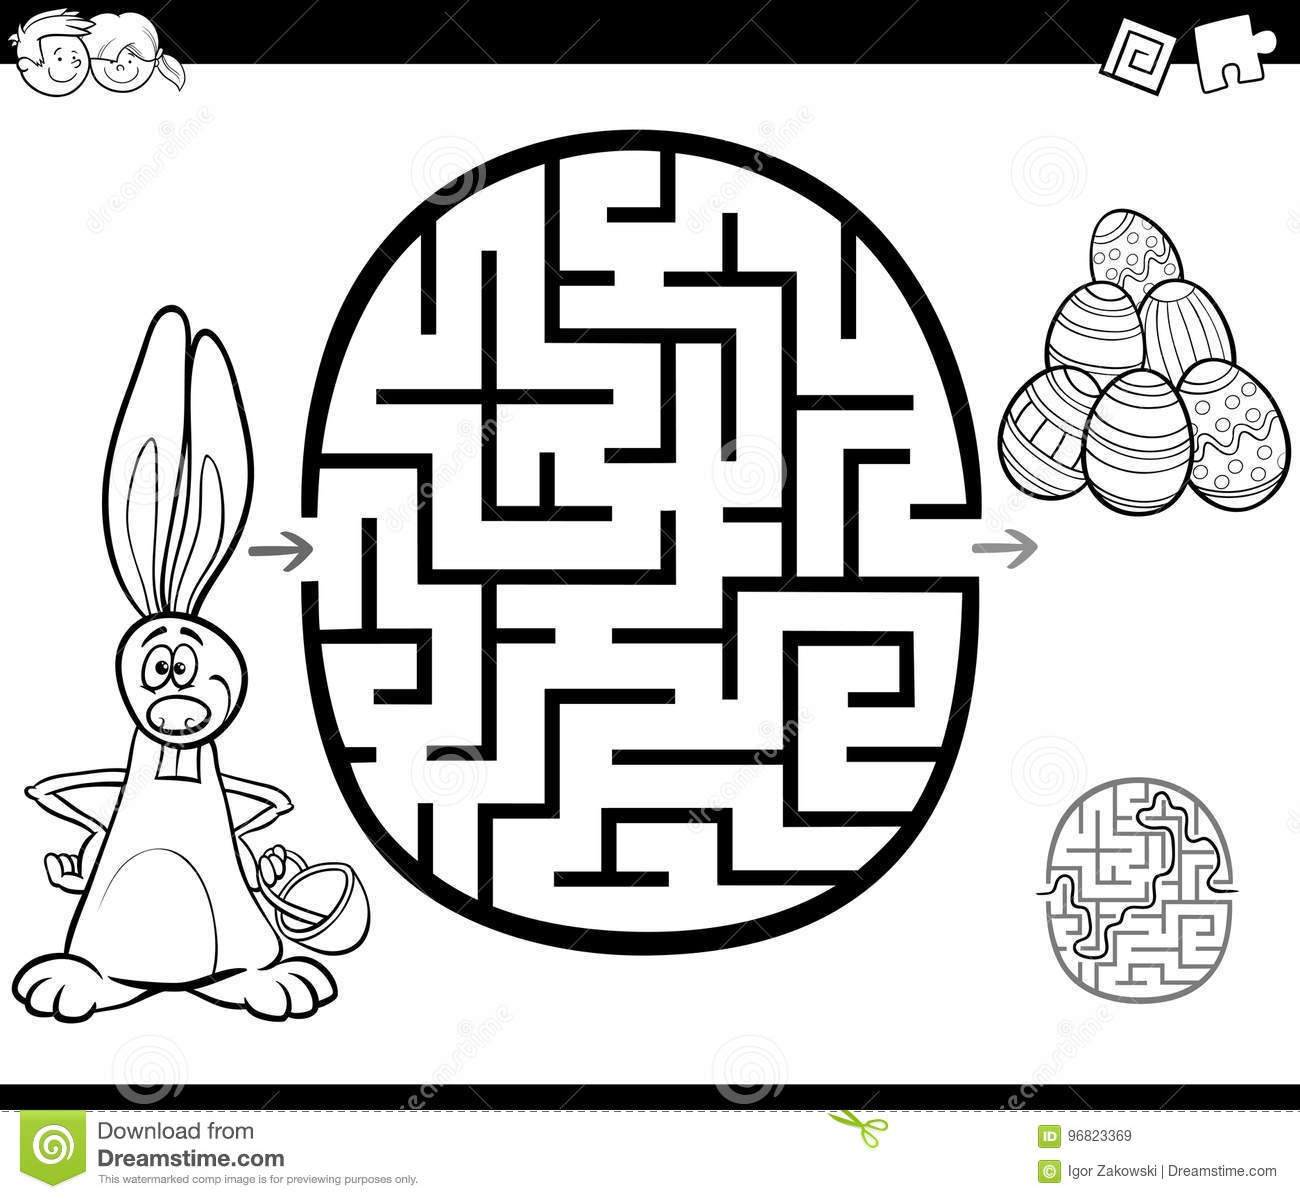 Free Printable Easter Bunny Coloring Pages Activity Page | 1199x1300